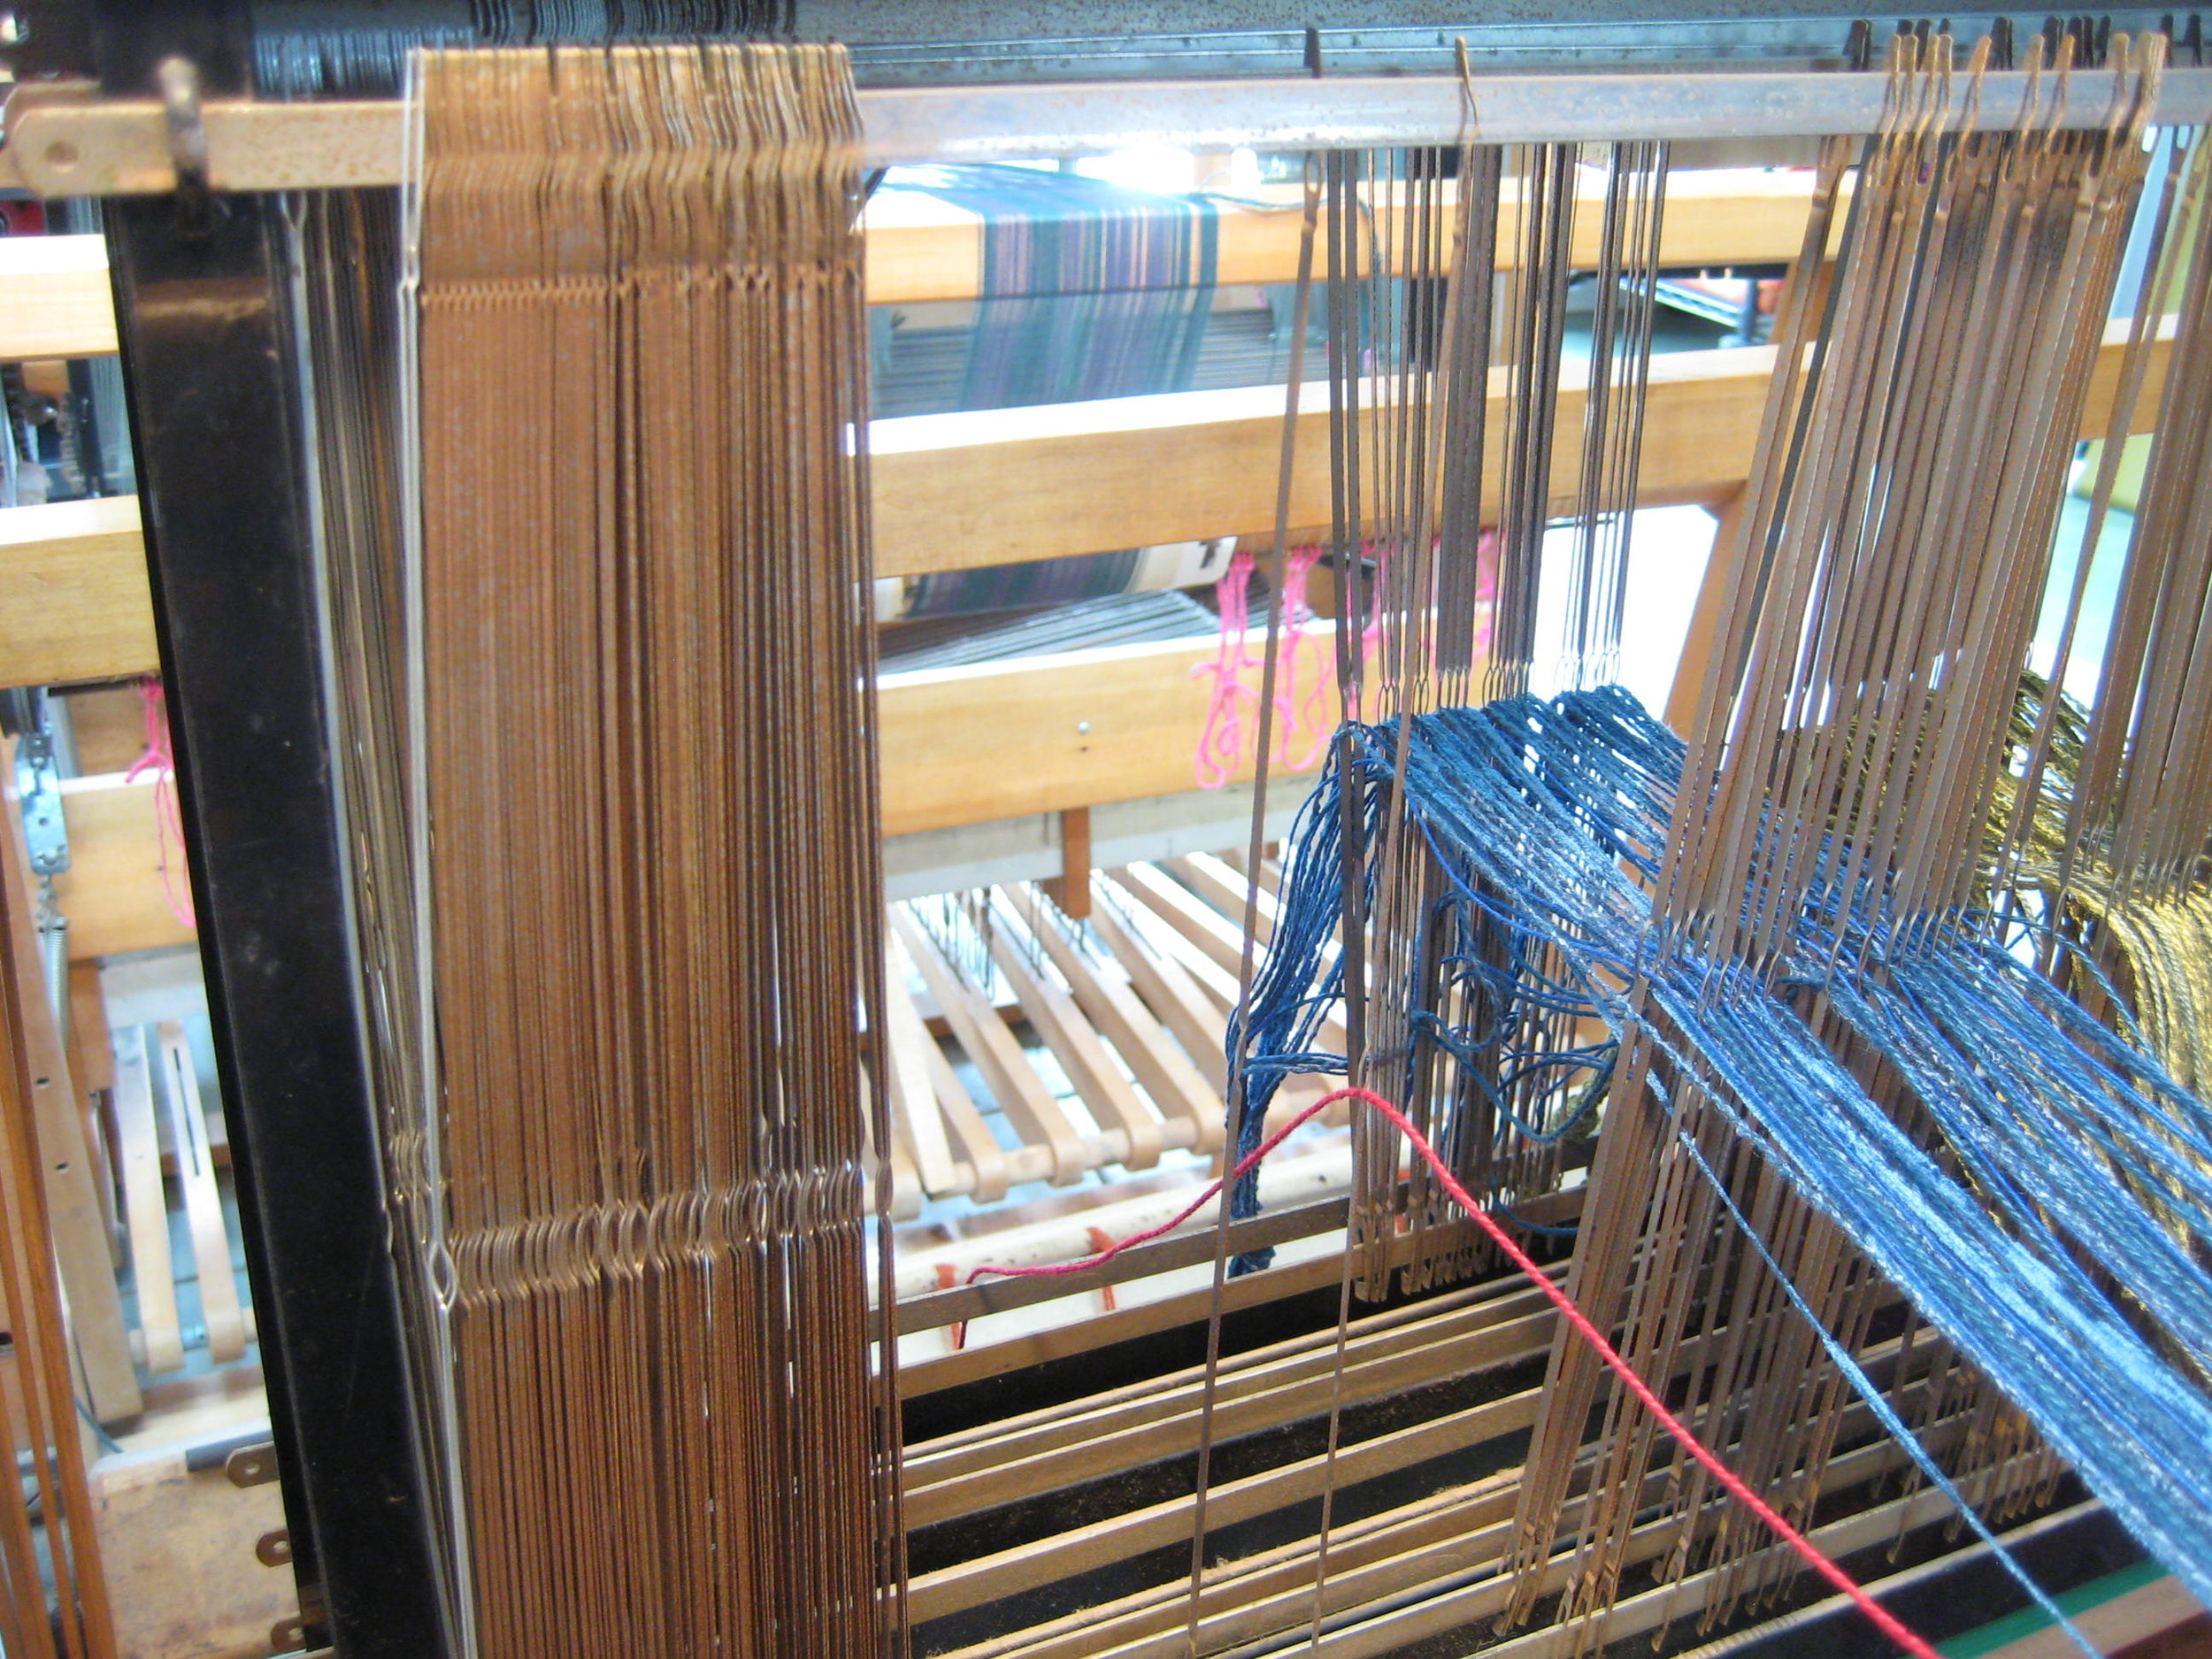 On this loom, the heddles are made of medal and are the type used by commercial production looms. It is very easy to make a mistake, so I count out the heddles I use in a section and then check them after that section is threaded. Each section is tied in a hard knot after threading.